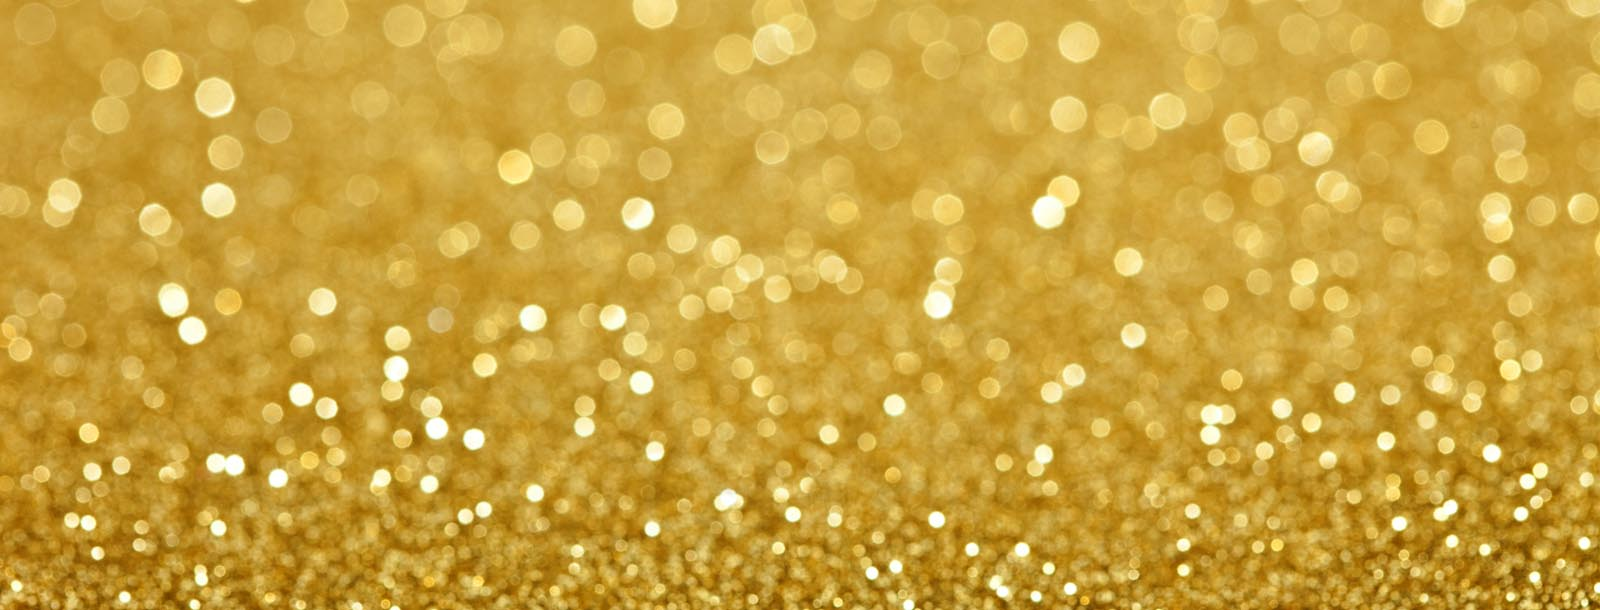 gold_glitter_background